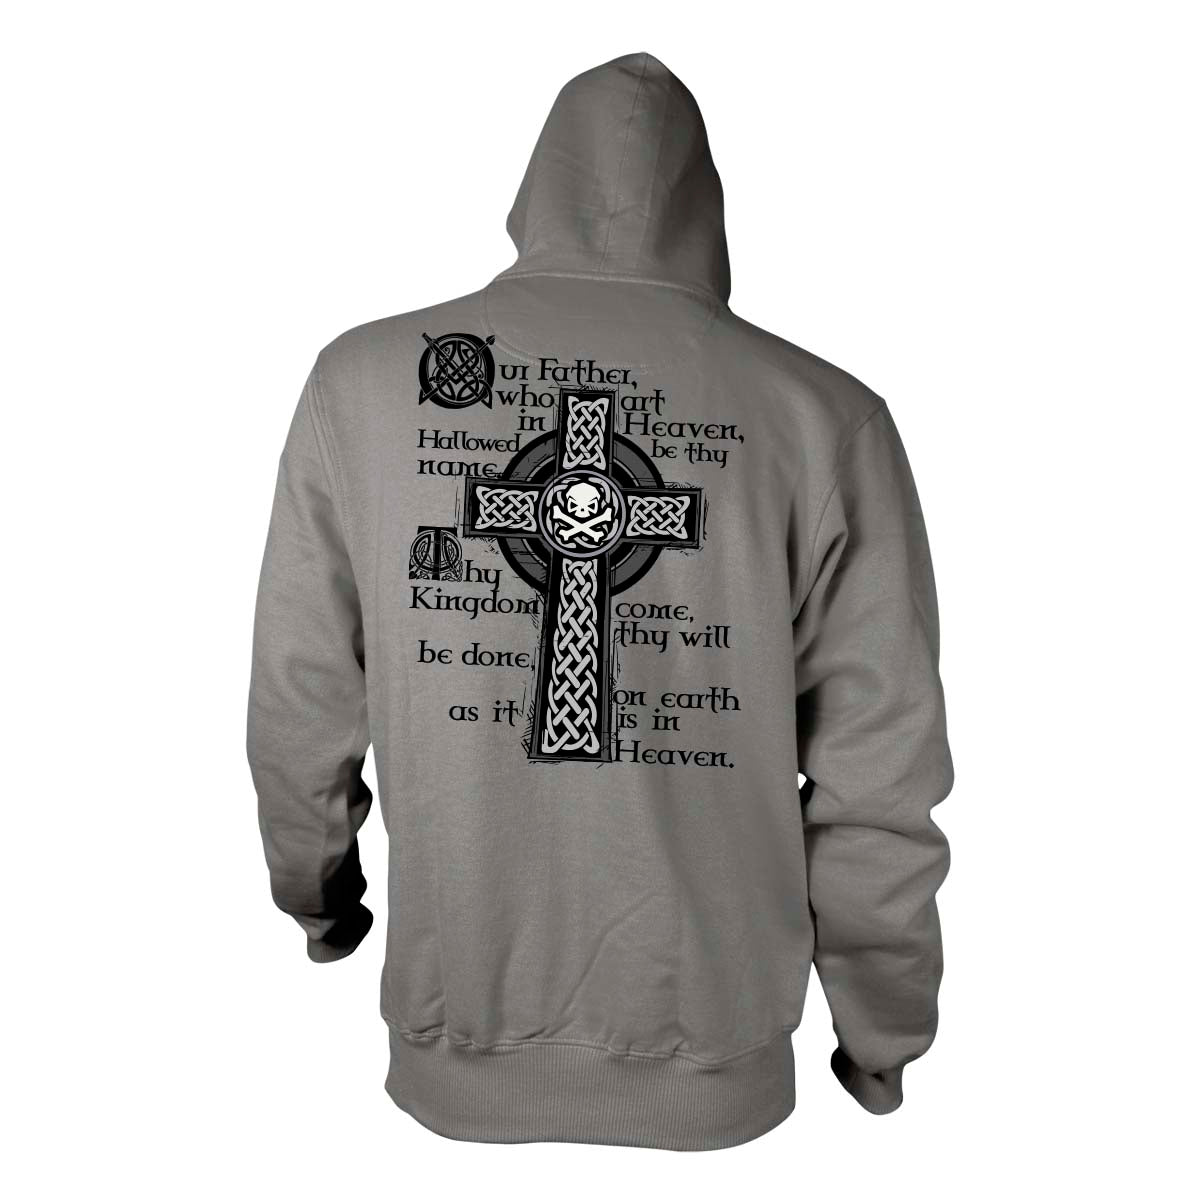 Lord's Prayer - Hoodie - Grey - T-Shirts - Pipe Hitters Union